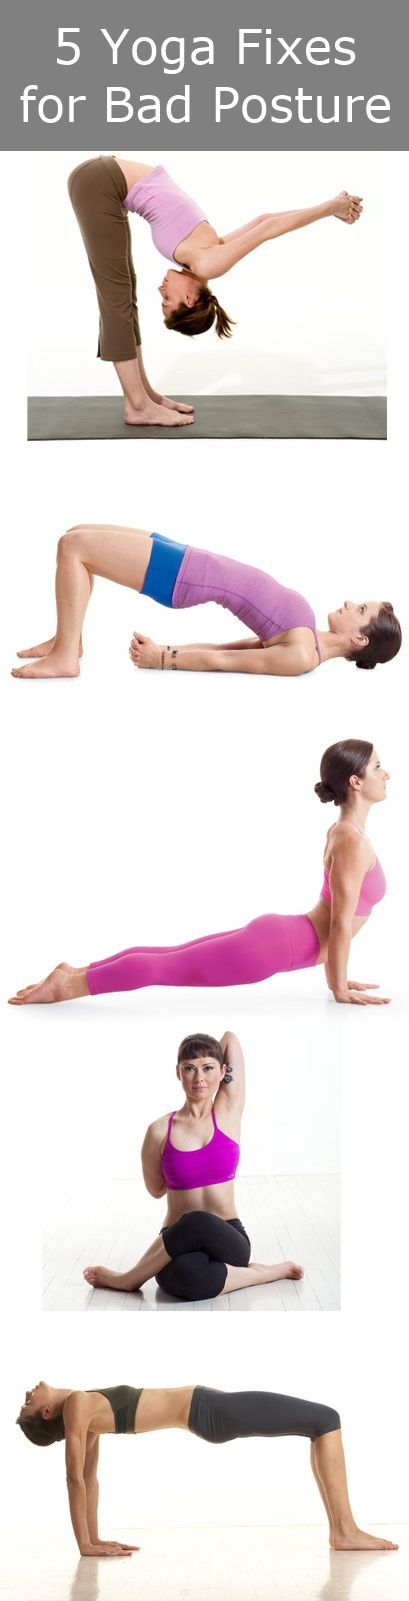 5 Yoga Fixes For Bad Posture @Jordyn Crane Crane Crane dillon Griffin